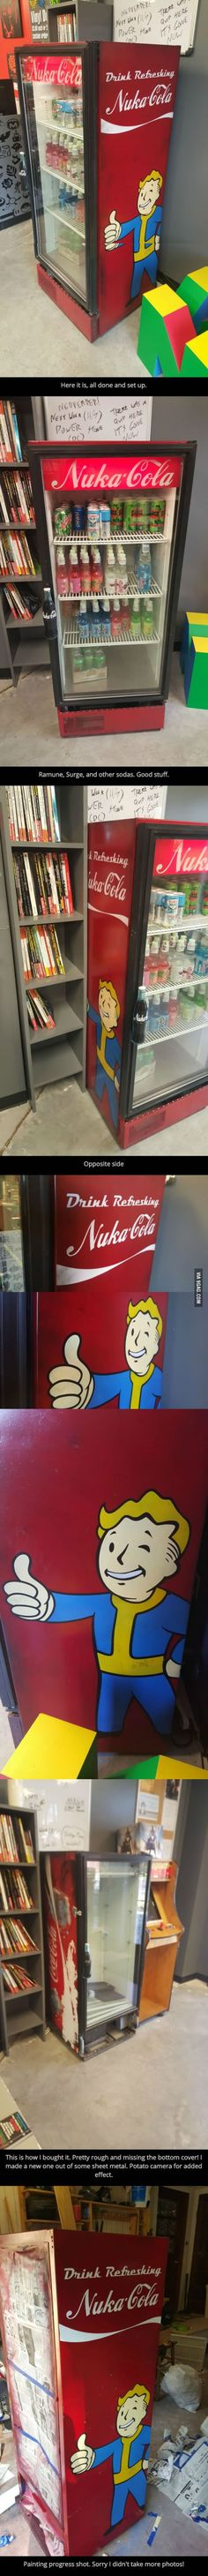 This guy bought a beat up Coke cooler and made it a beat up Fallout cooler.